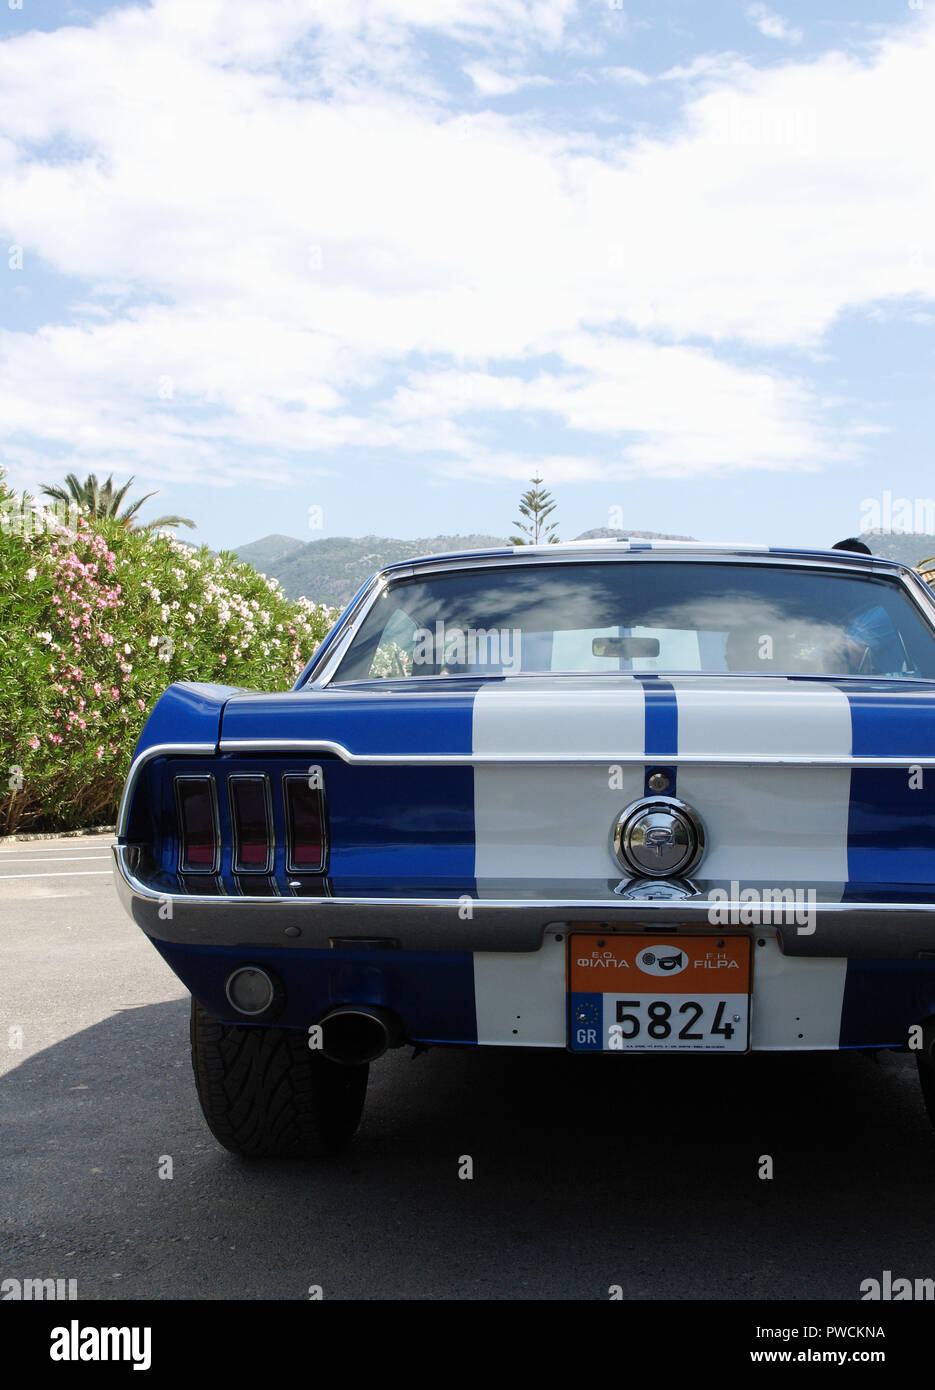 Vintage Ford Mustang on display at the 8th Hellenic Bulgarian LEKAM classic car rally at the Acharavi Park Hotel, Acharavi, Corfu, Greece - Stock Image